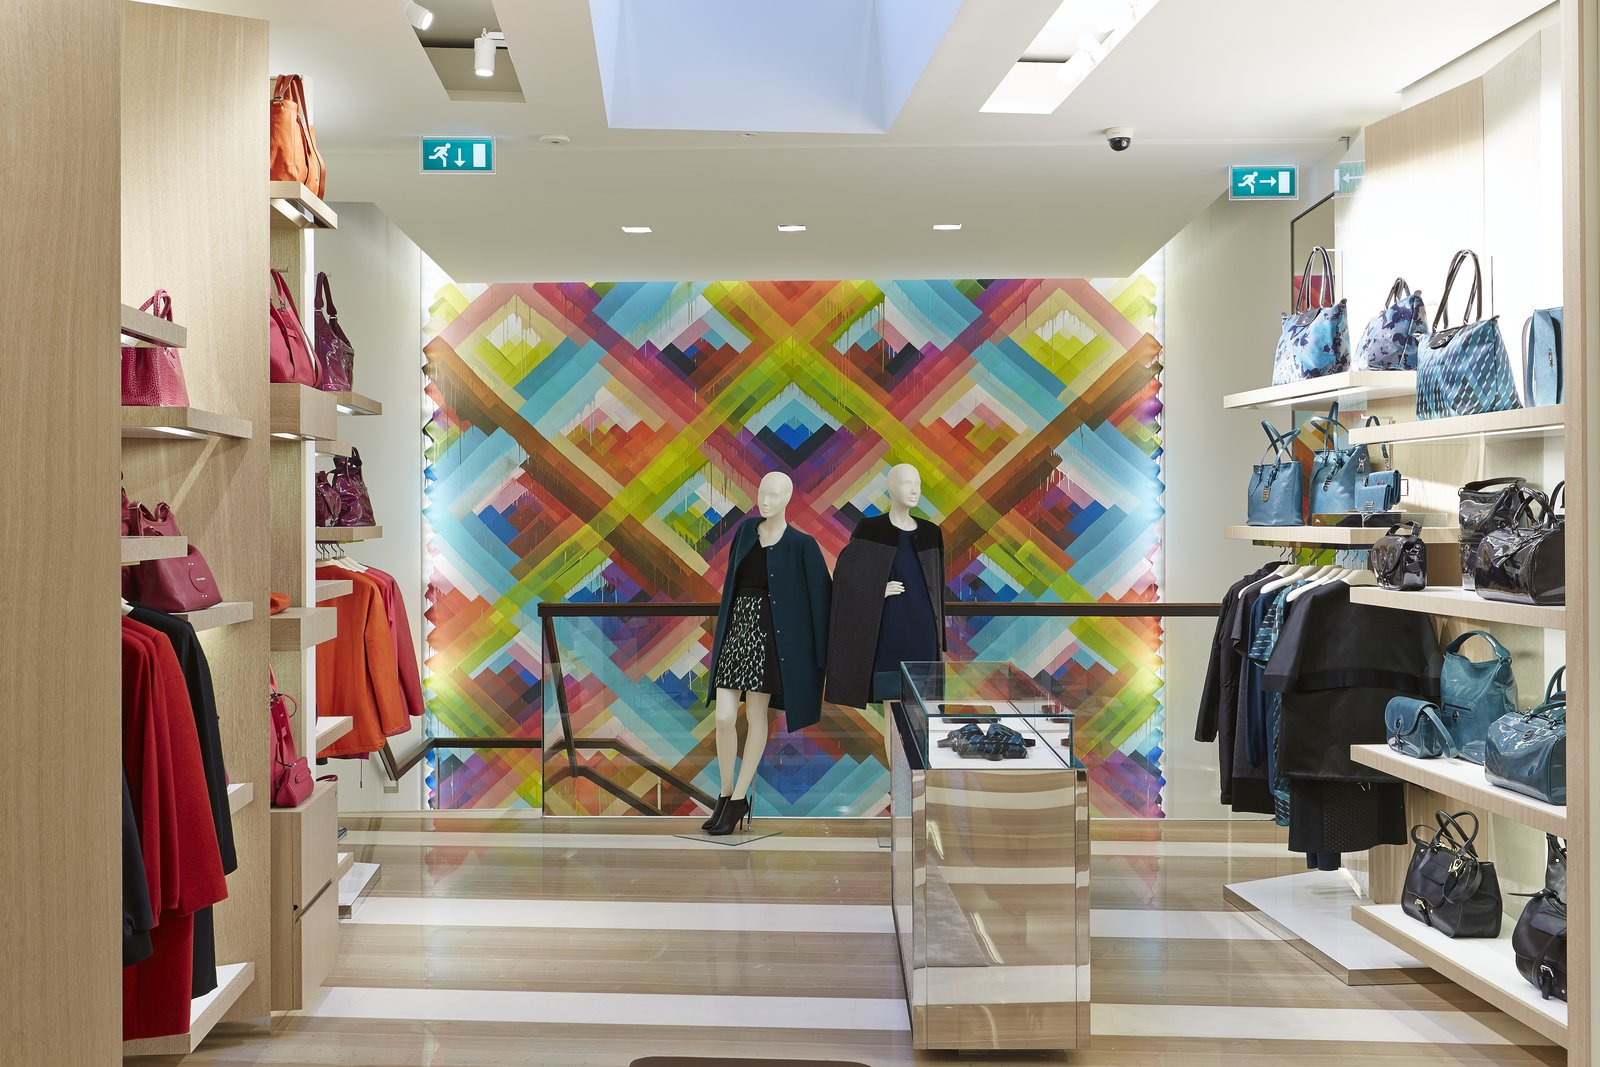 The prismatic hues of Maya Hayuk's mural complement the hot and cool tones of the merchandise lining the walls.  Photo 2 of 5 in Mural Artist Sets the Scene at Longchamp's Flagship Store in London